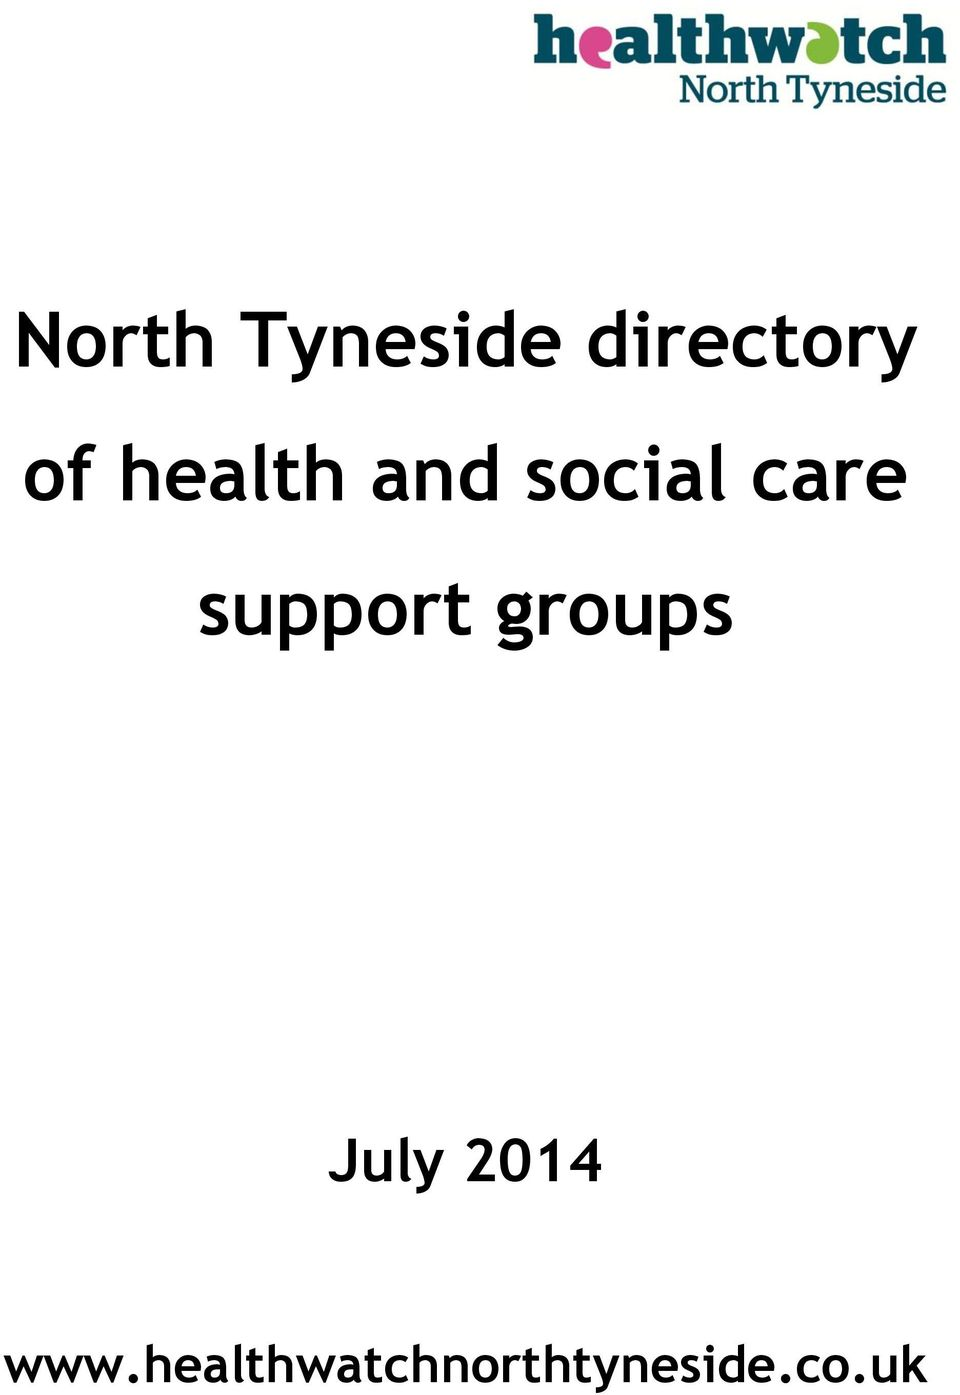 support groups July 2014